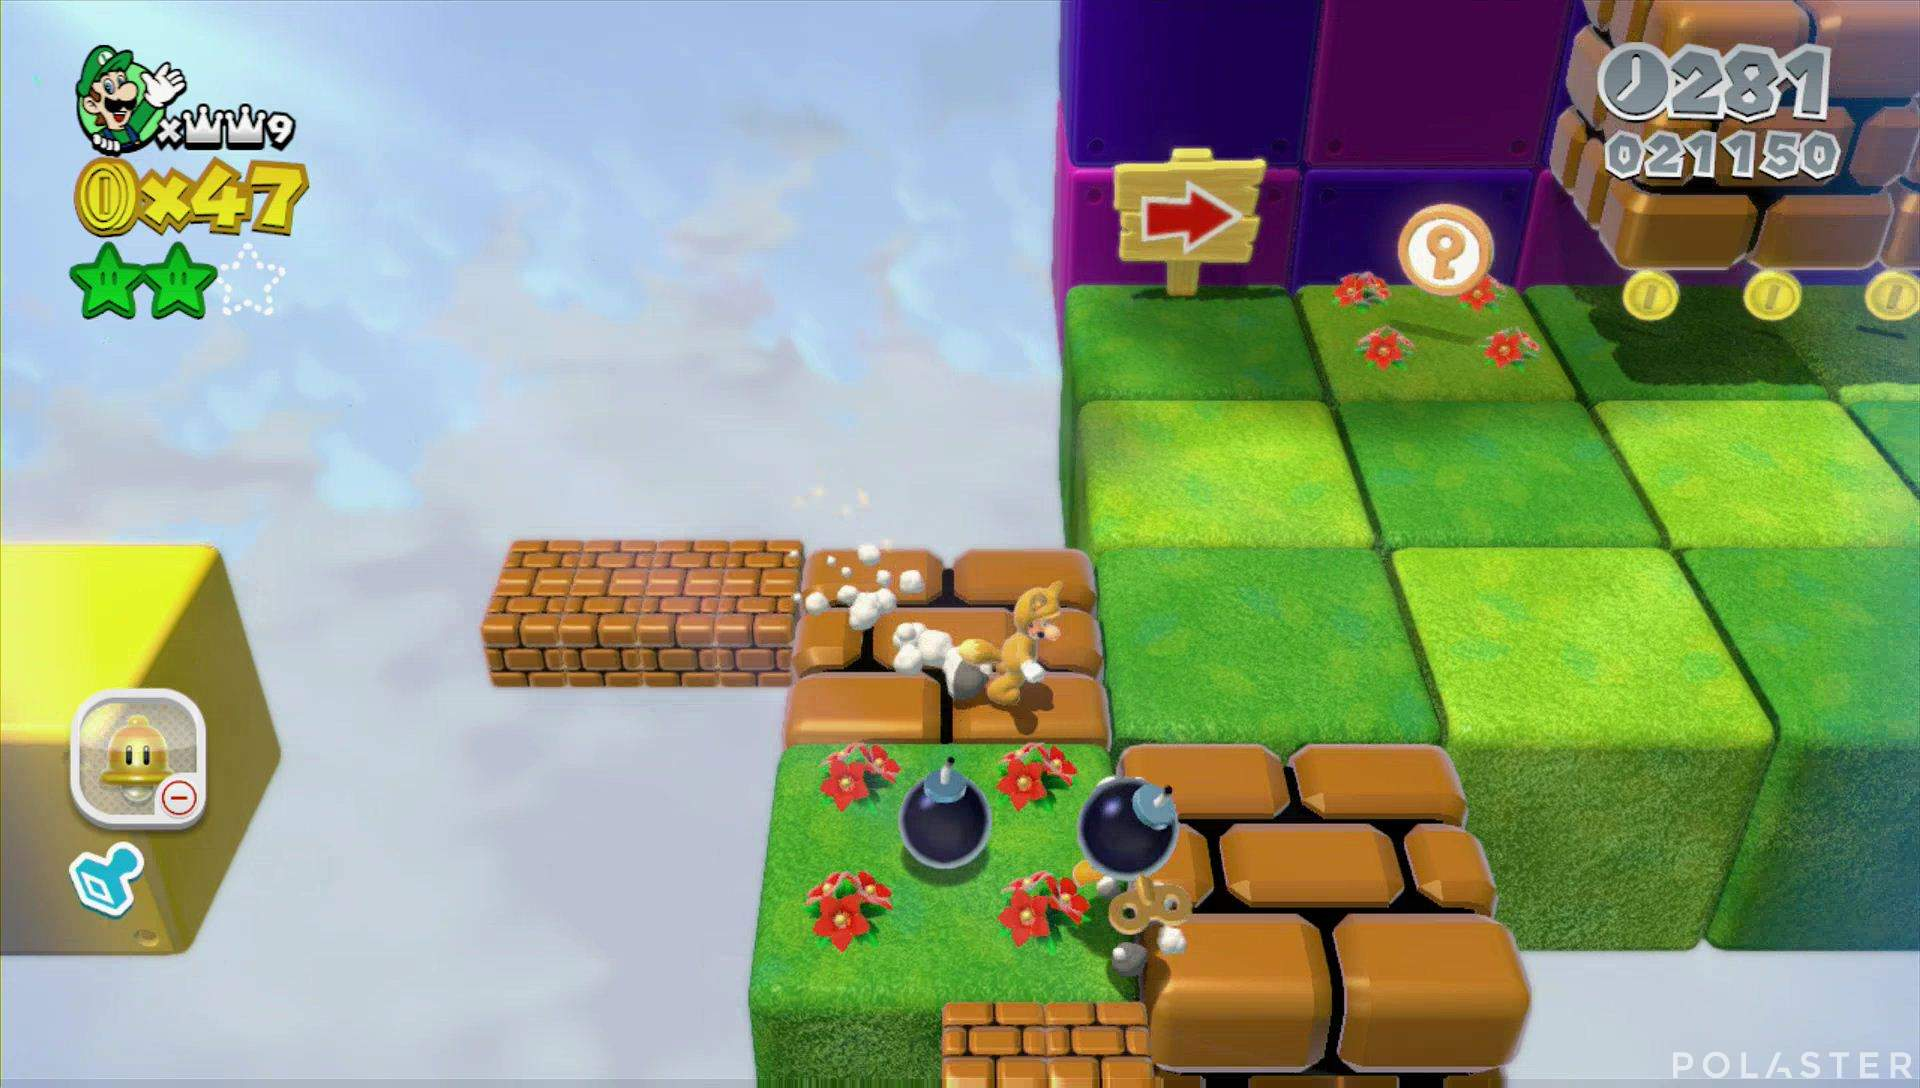 Super Mario 3D World Mundo Estrella-5 Moneda llave 1